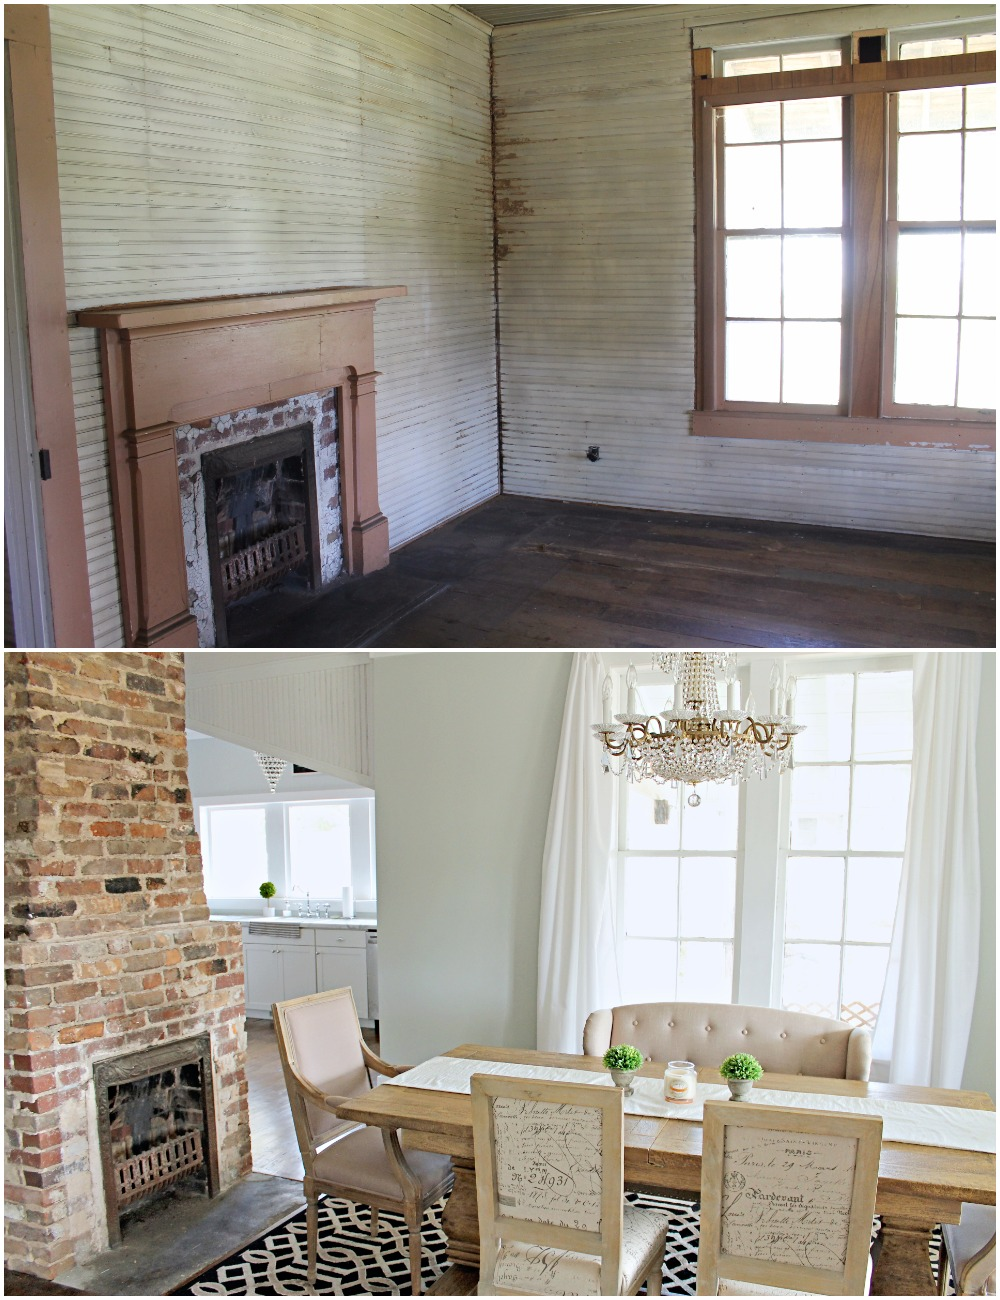 Elizabeth Burns Design  Budget-Friendly Fixer Upper Farmhouse Before and After House Flip - DIY Dining Room with Exposed Brick Fireplace - Sherwin Williams Silver Strand (5).jpg